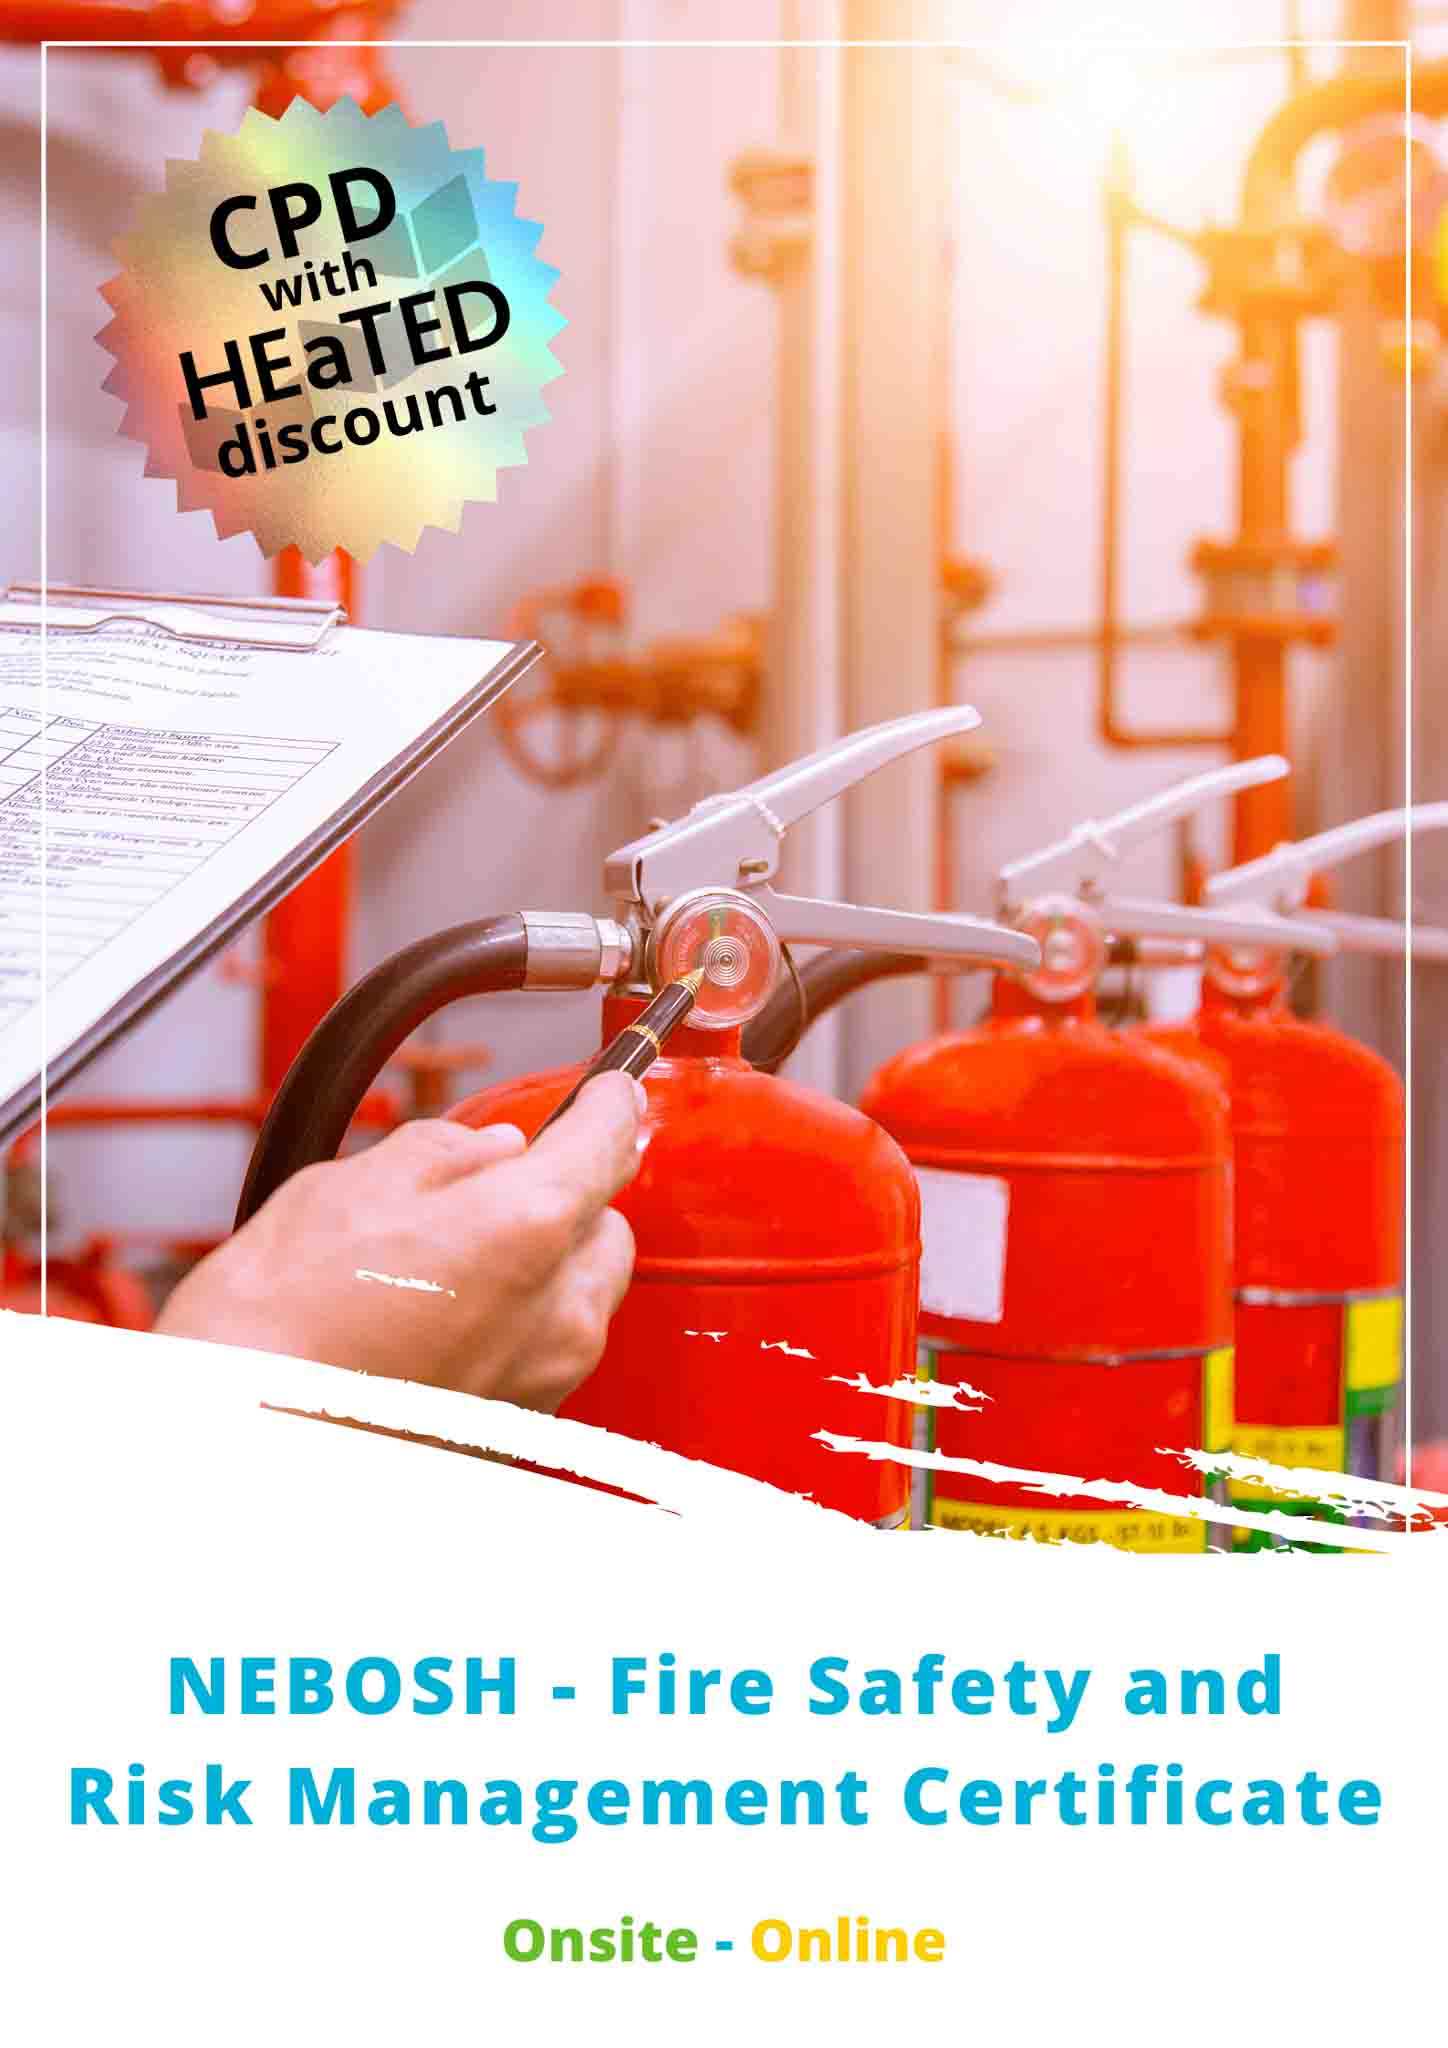 Fire Safety and Risk Management Brochure Image